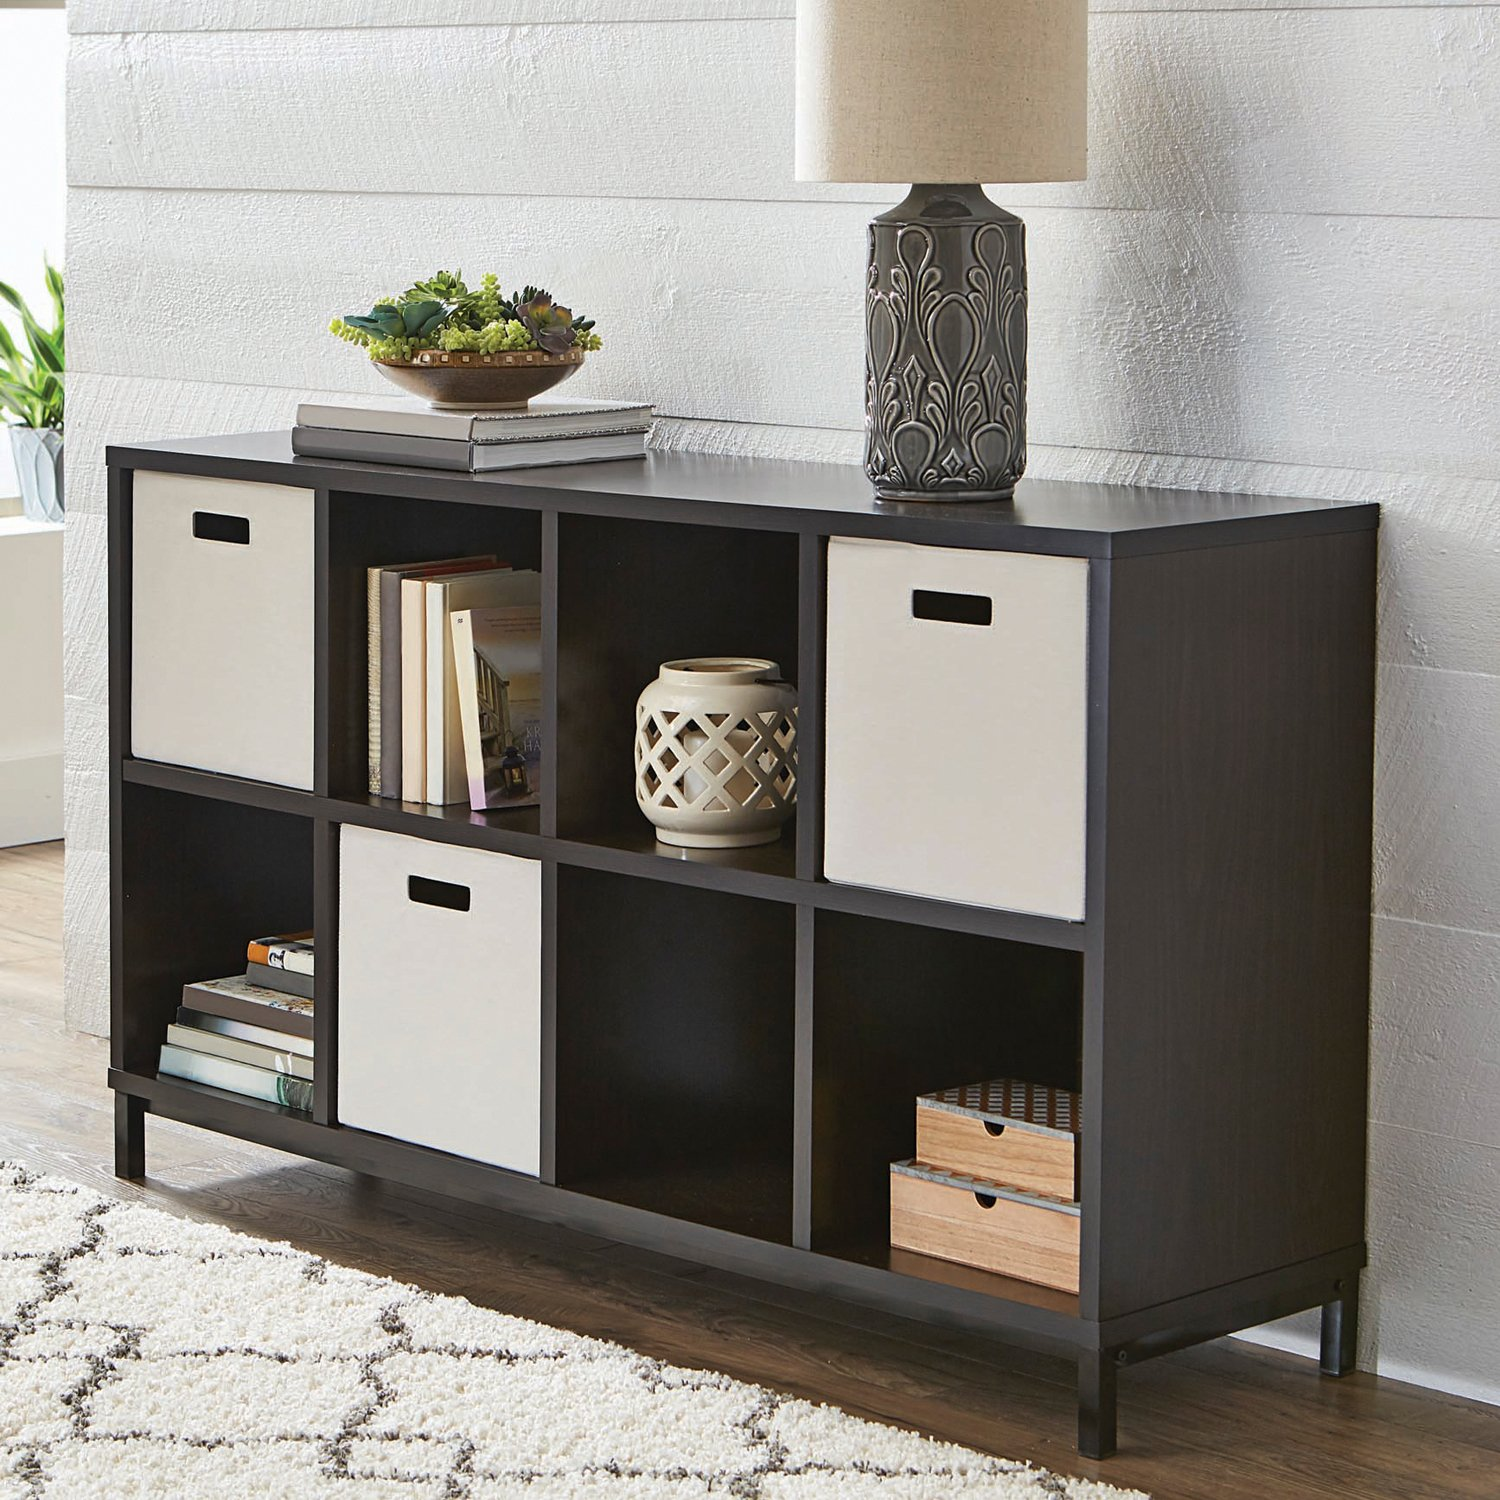 Better Homes and Gardens 8-cube Metal Base Organizer Creates Multiple Storage Solutions in Dark Espresso